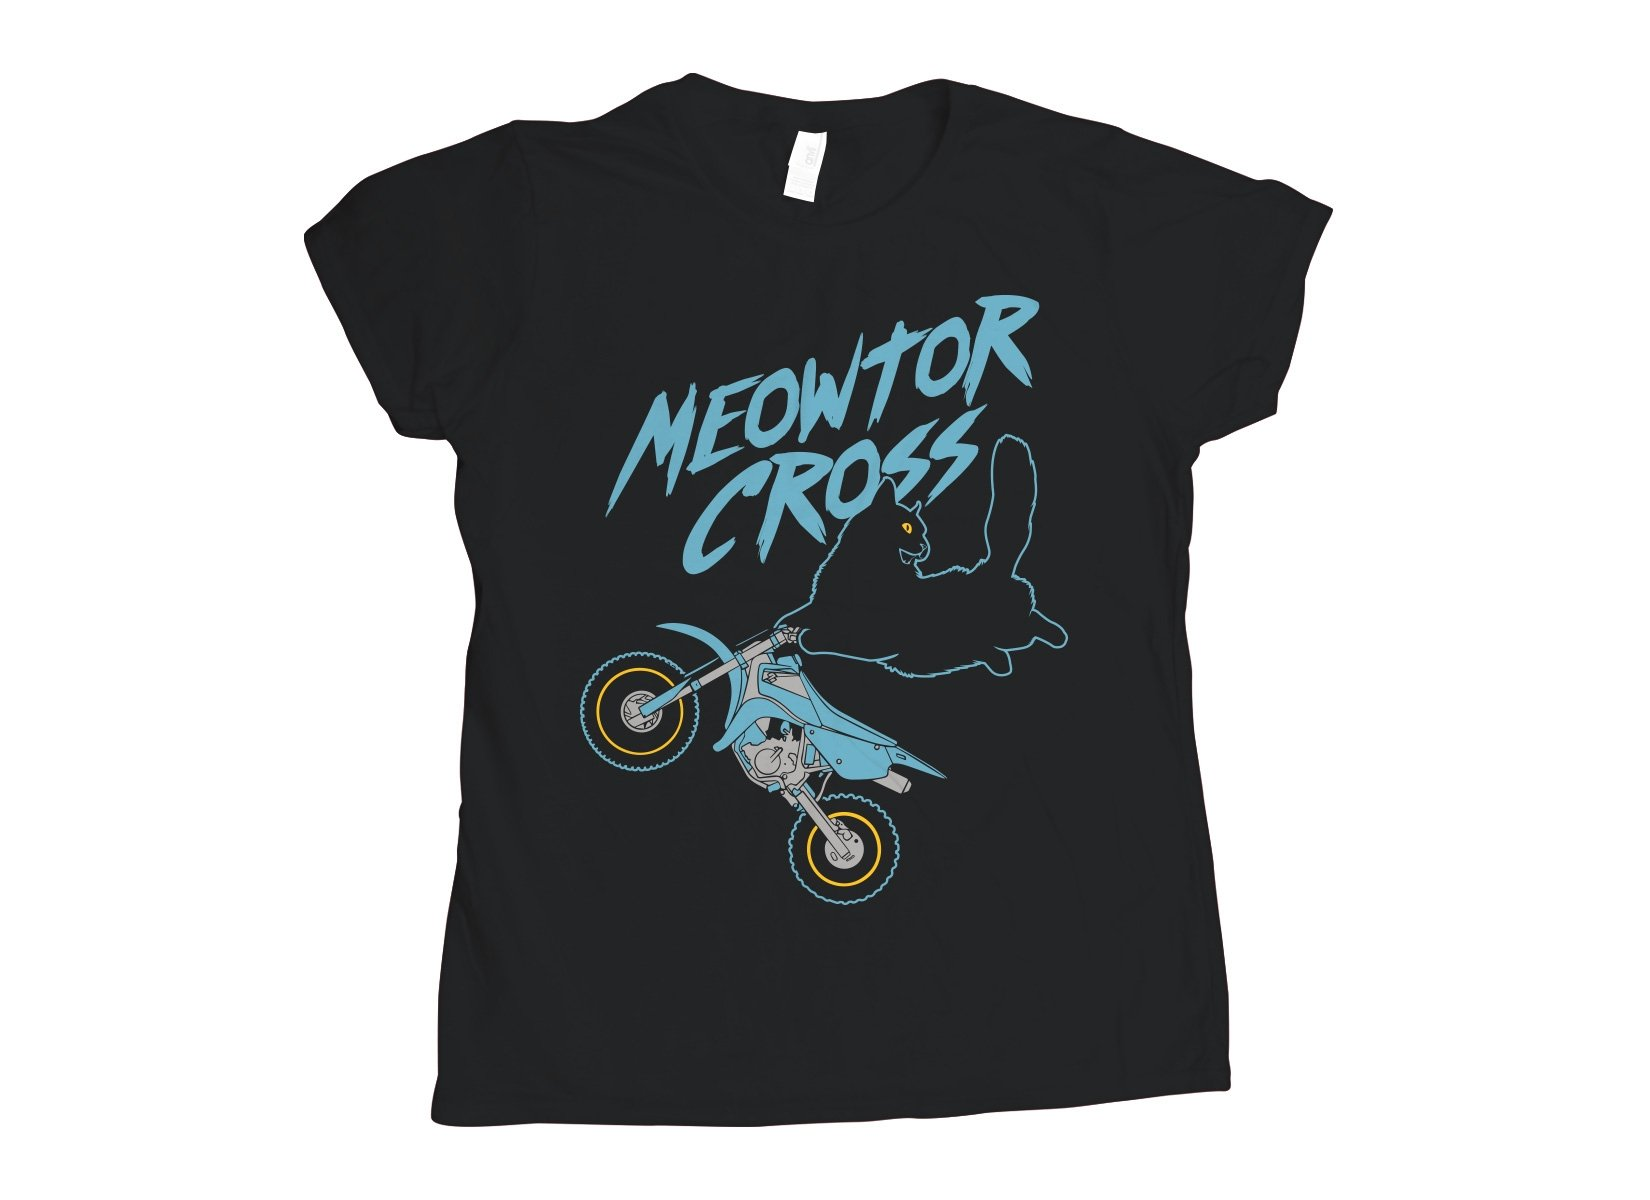 Meowtor Cross on Womens T-Shirt